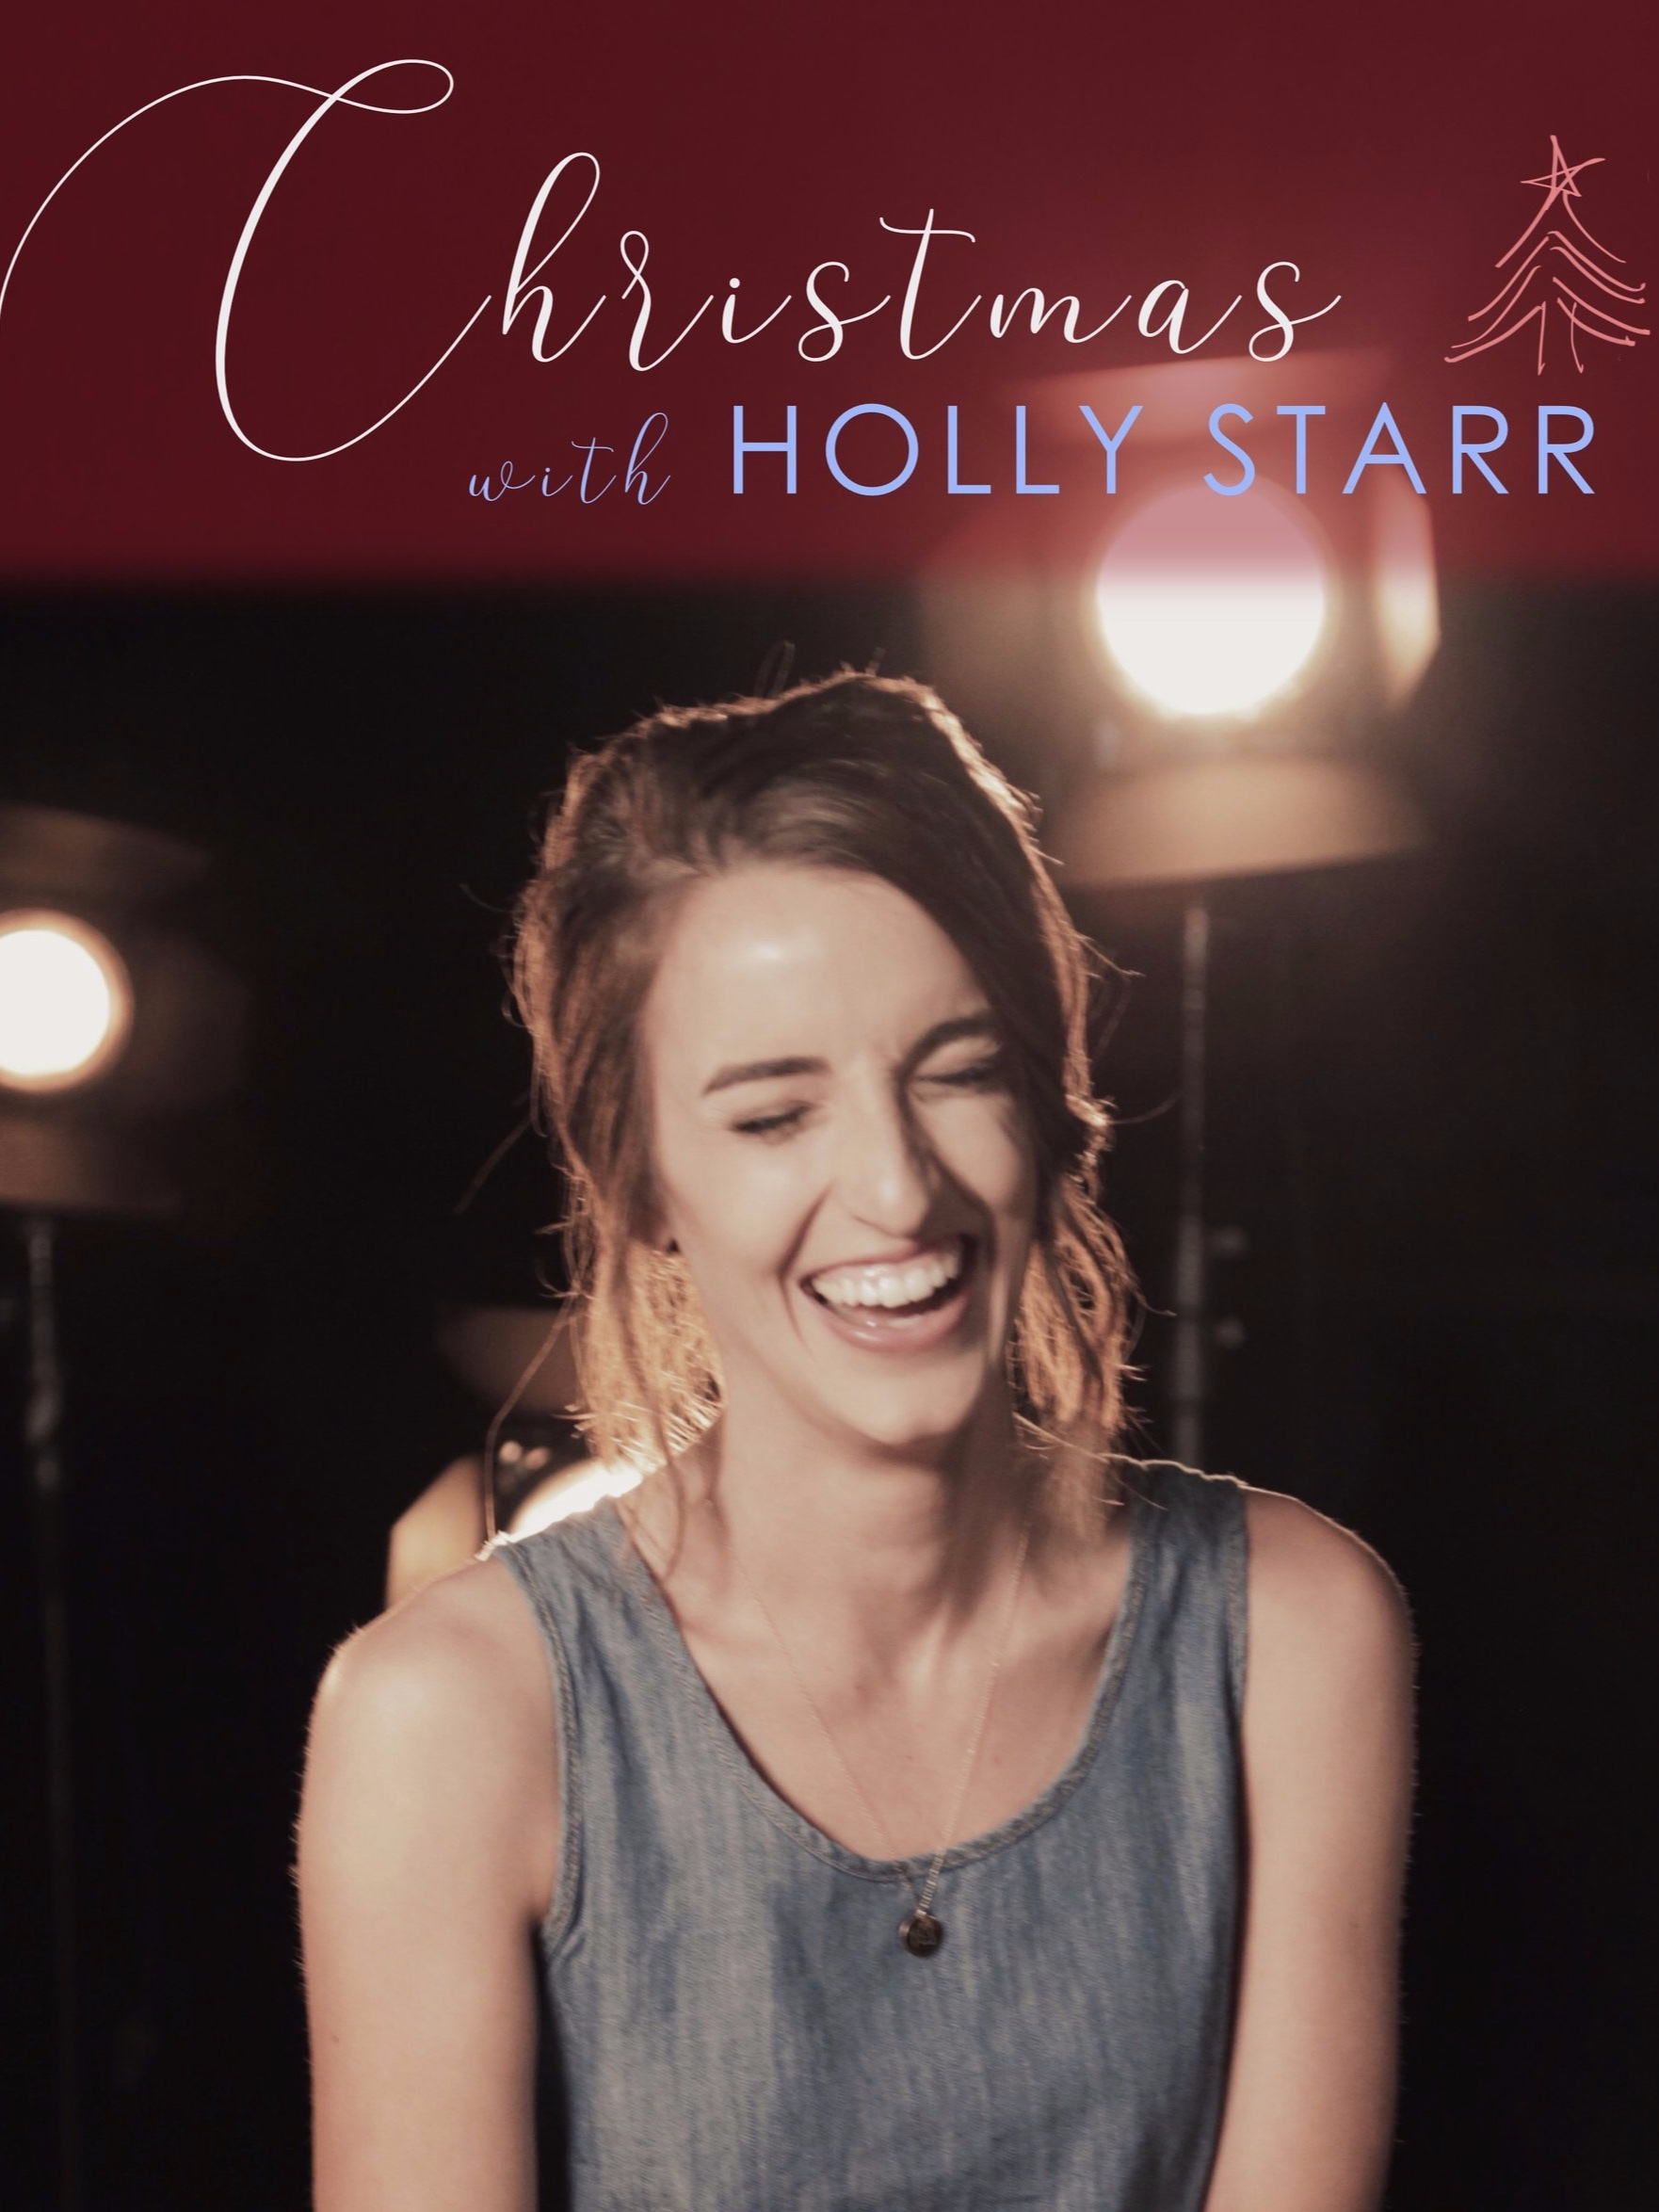 Christmas with Holly Starr - Join Holly Starr this December for her 5th Annual Christmas Tour! Now booking West Coast Dates December 1st thru December 22nd. Contact us for more information.